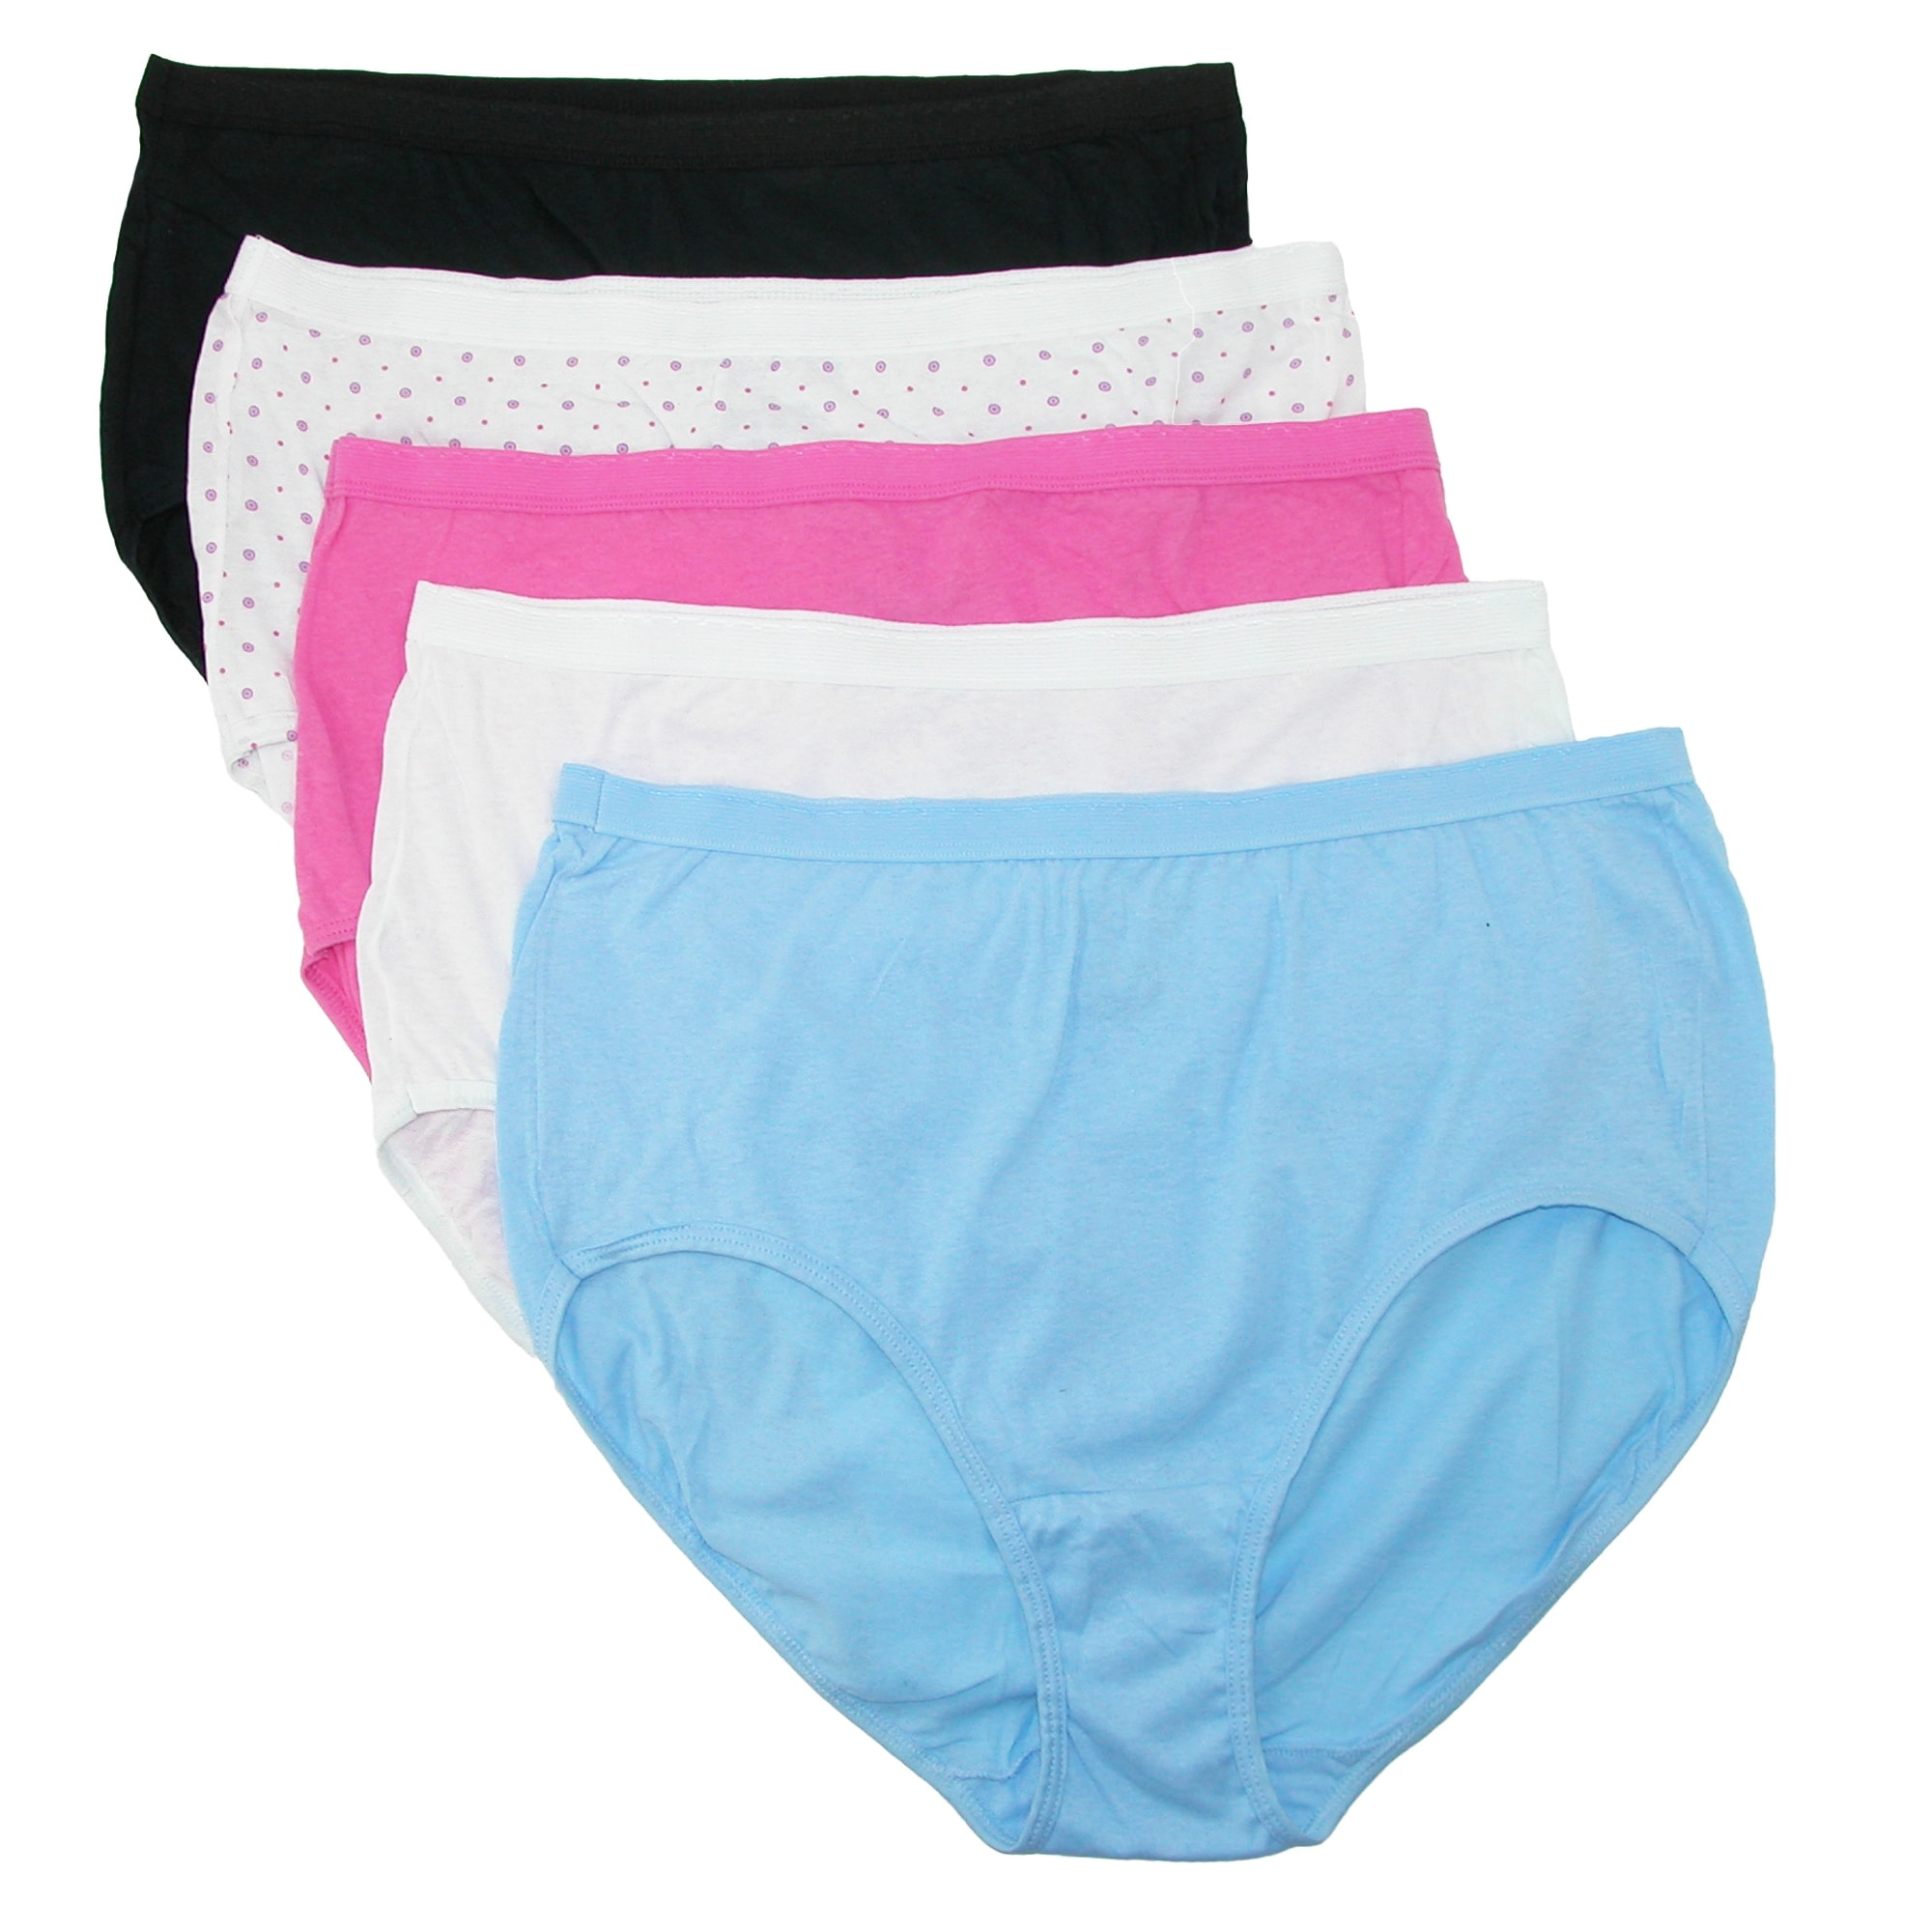 671c00f573a8 Buy Panties Online at Overstock | Our Best Intimates Deals